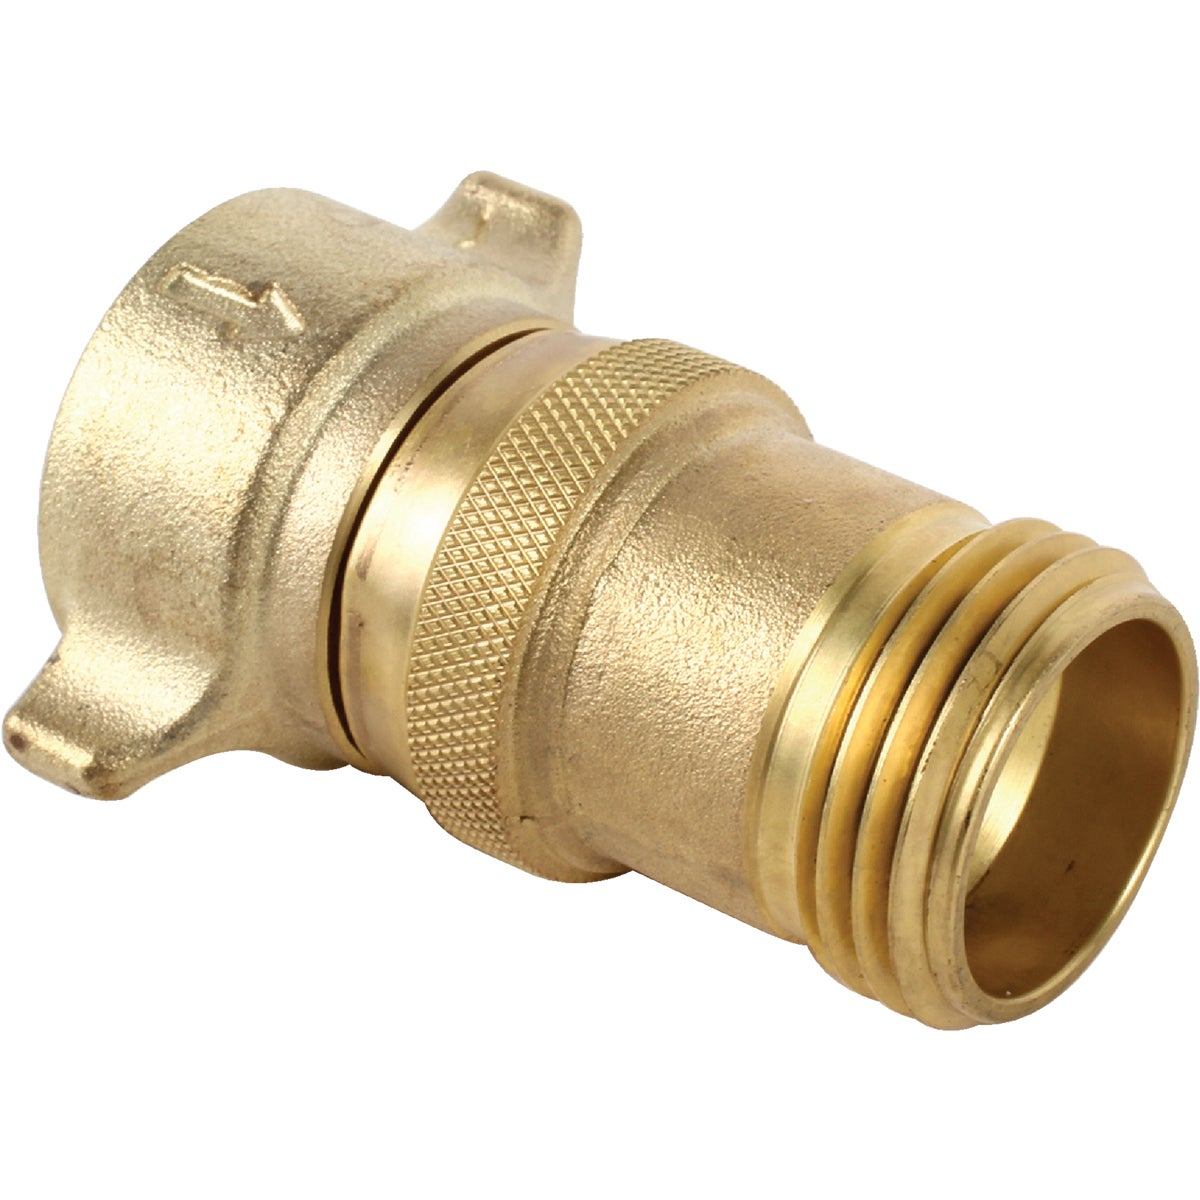 "3/4"" BRASS REGULATOR - 40055 by Camco Mfg."